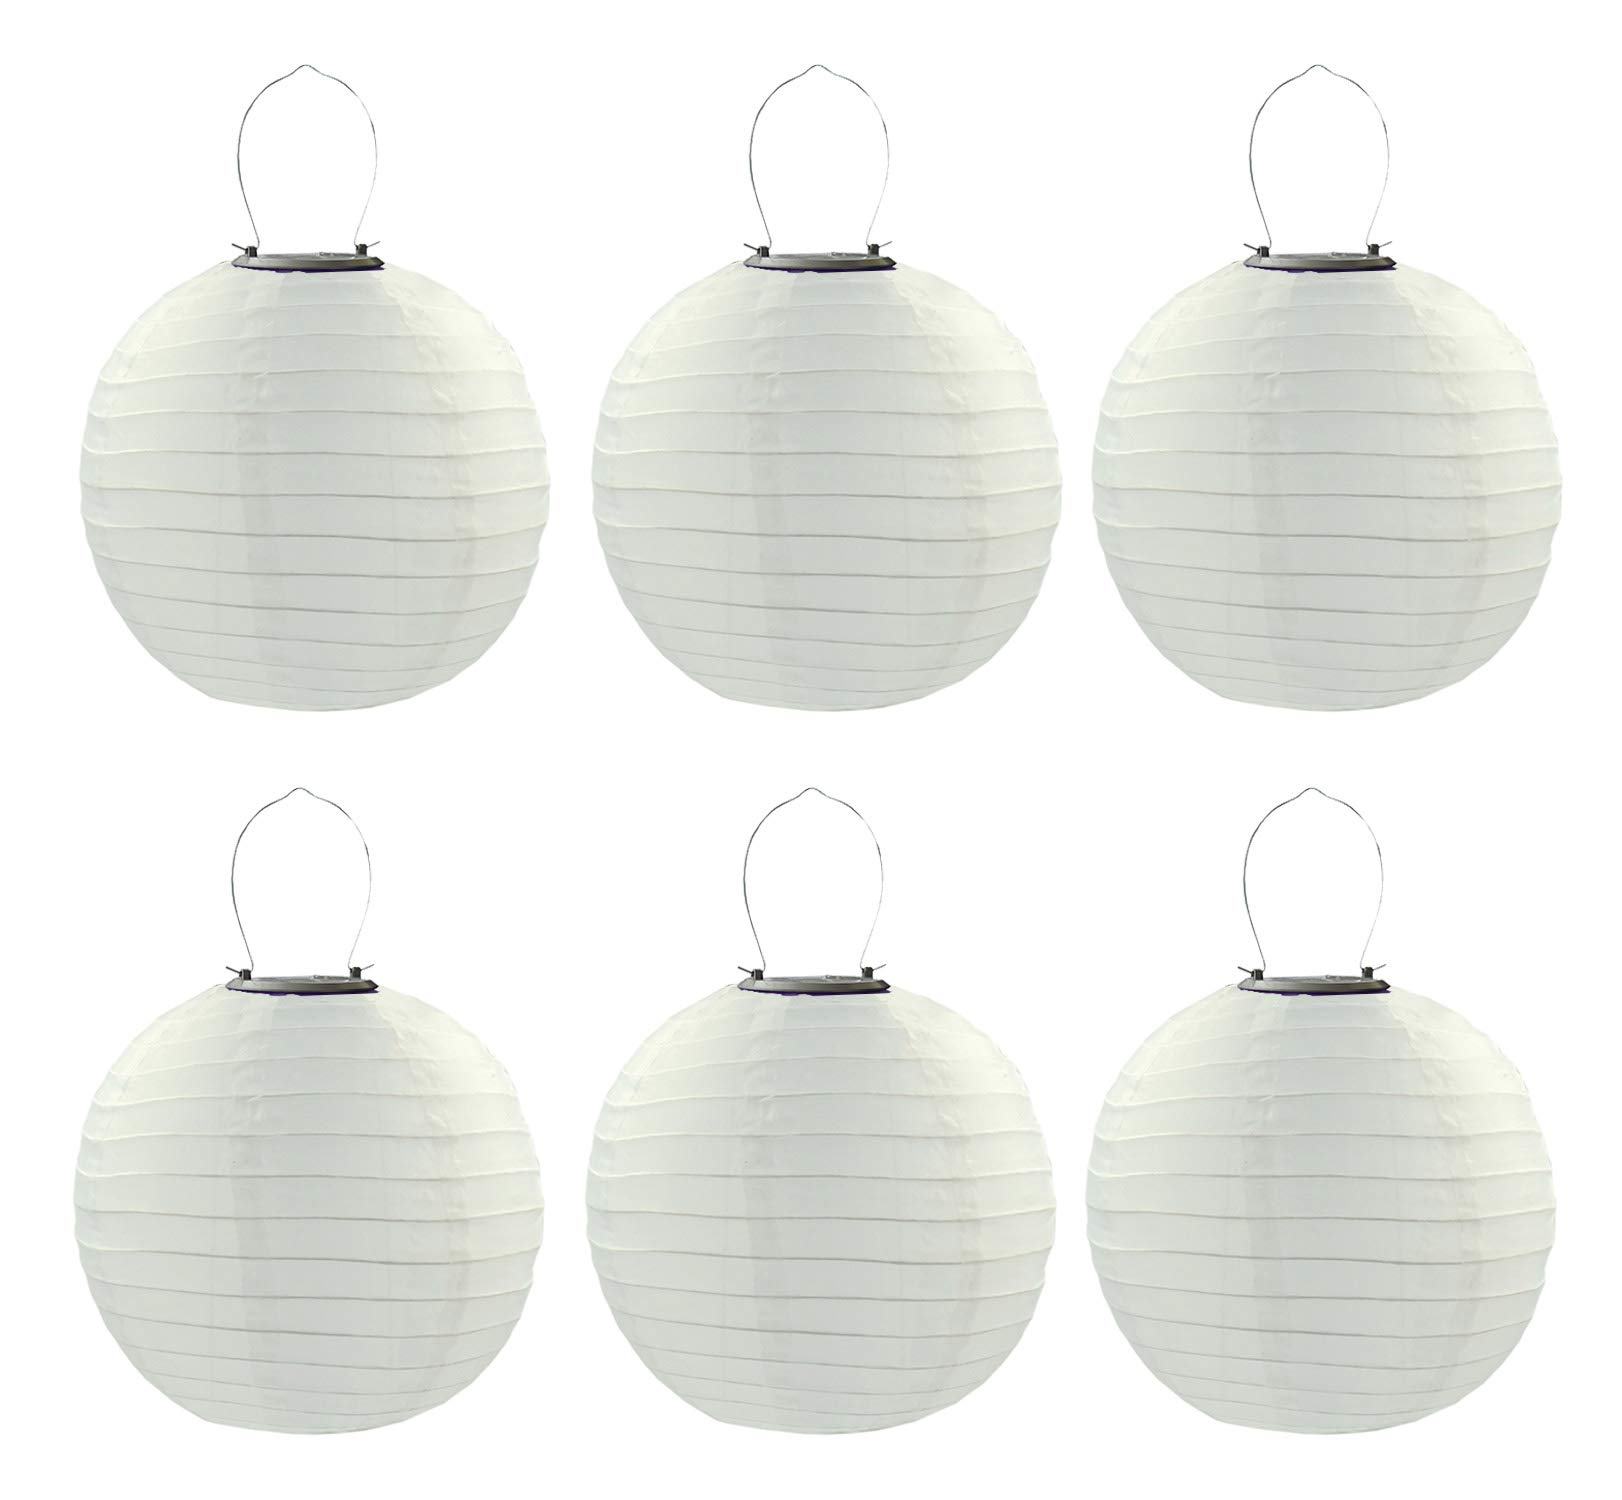 6PCS/Set 30cm Solar Powered Hanging Oriental 12'' 12inch Weatherproof Rechargeable Nylon Chinese Lanterns with 1W 5050SMD LED Light Bulb (White)